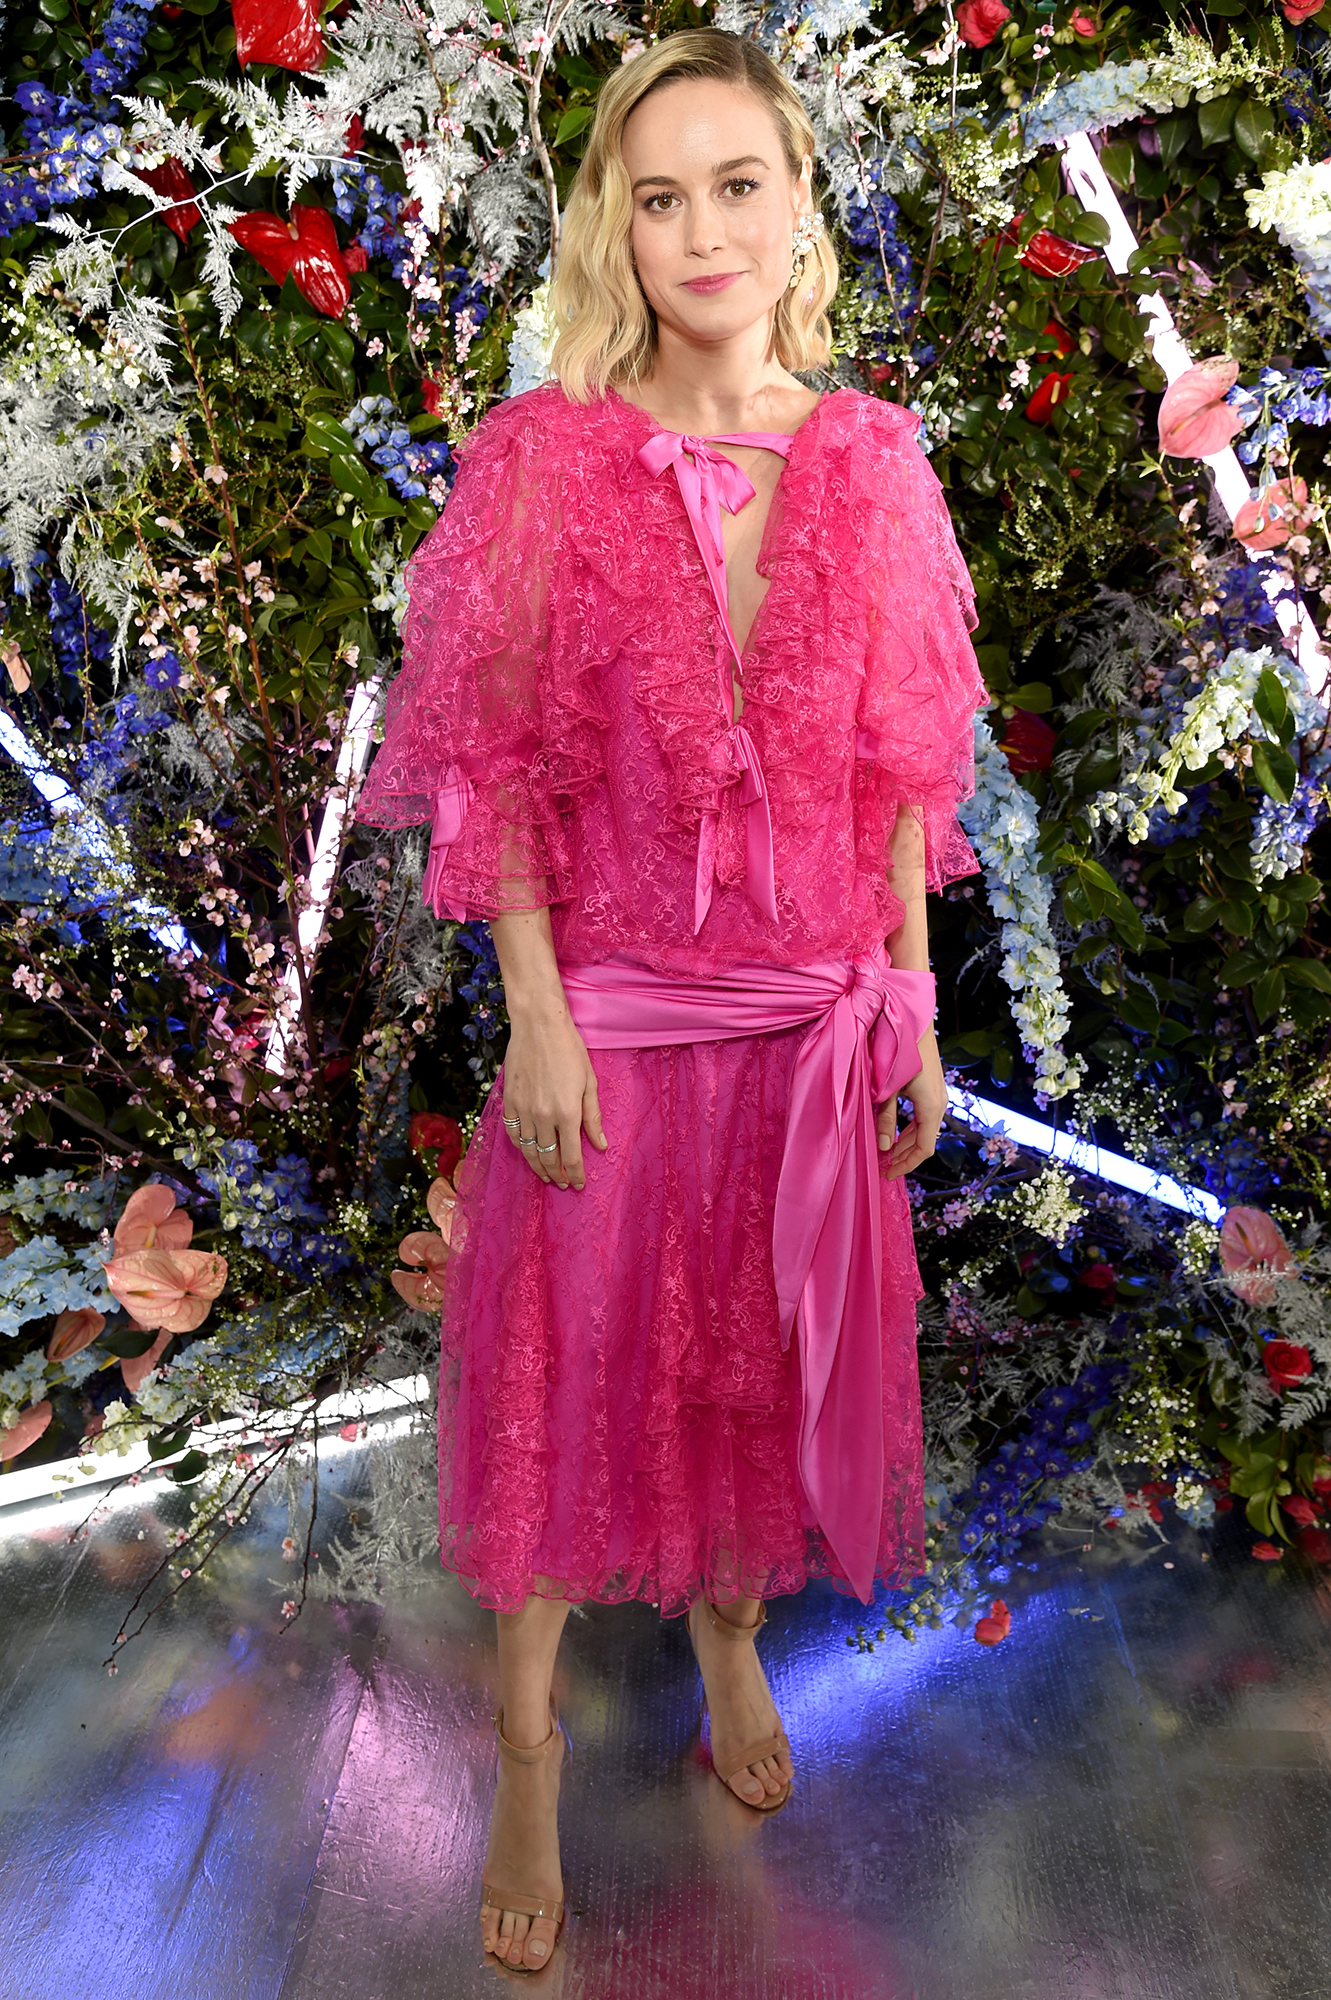 Hollywood's Freshest Faces Were Front Row at the Rodarte Show - The Captain Marvel star had Us thinking pink with her drapey bow-adorned frock.